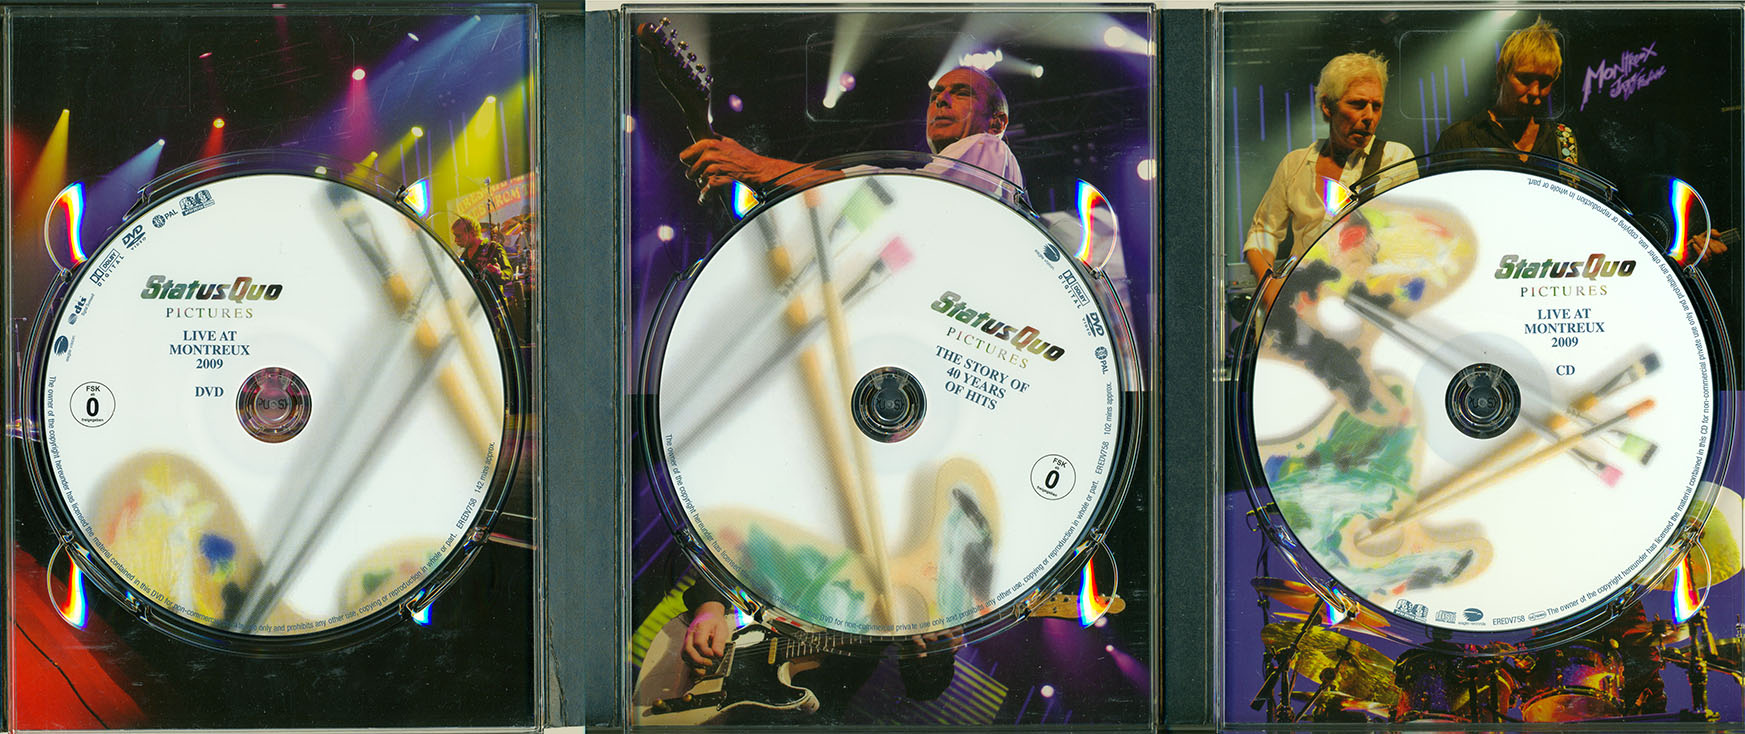 Status Quo - Pictures: Live At Montreux 2009 (2009) 2 DVD + CD Deluxe Edition